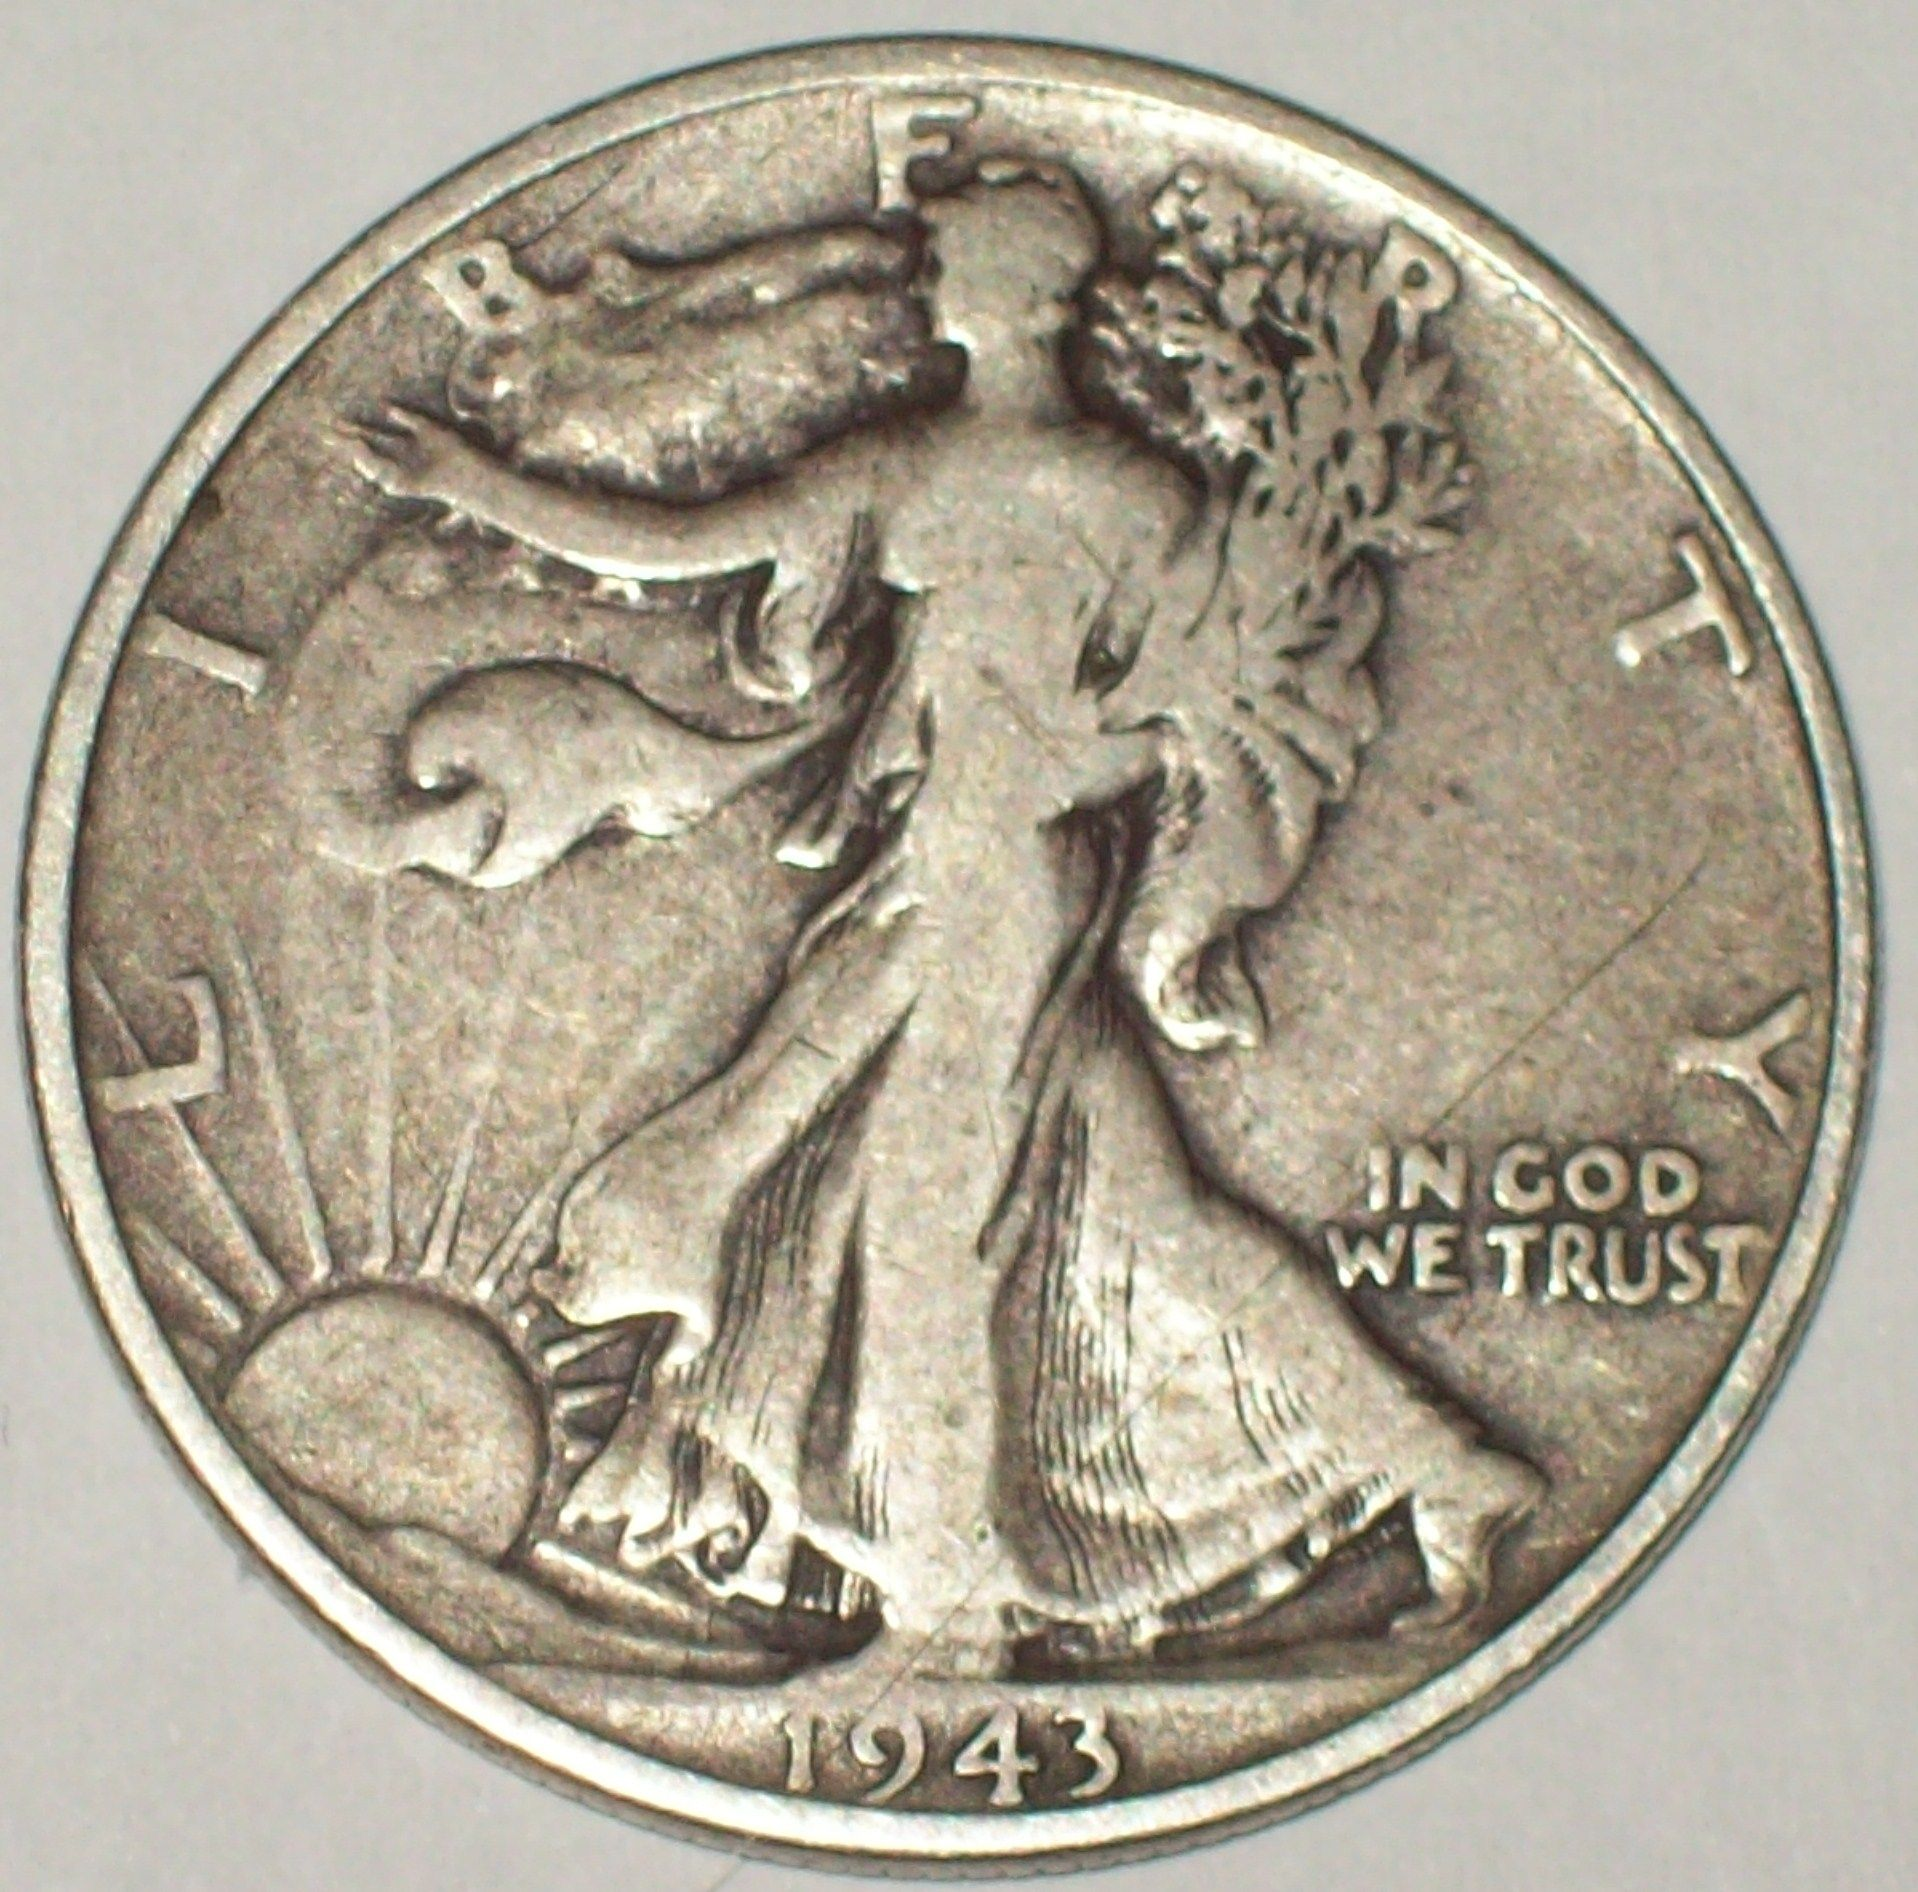 Silver Half Dollar | When I was a kid | Coins, Old coins